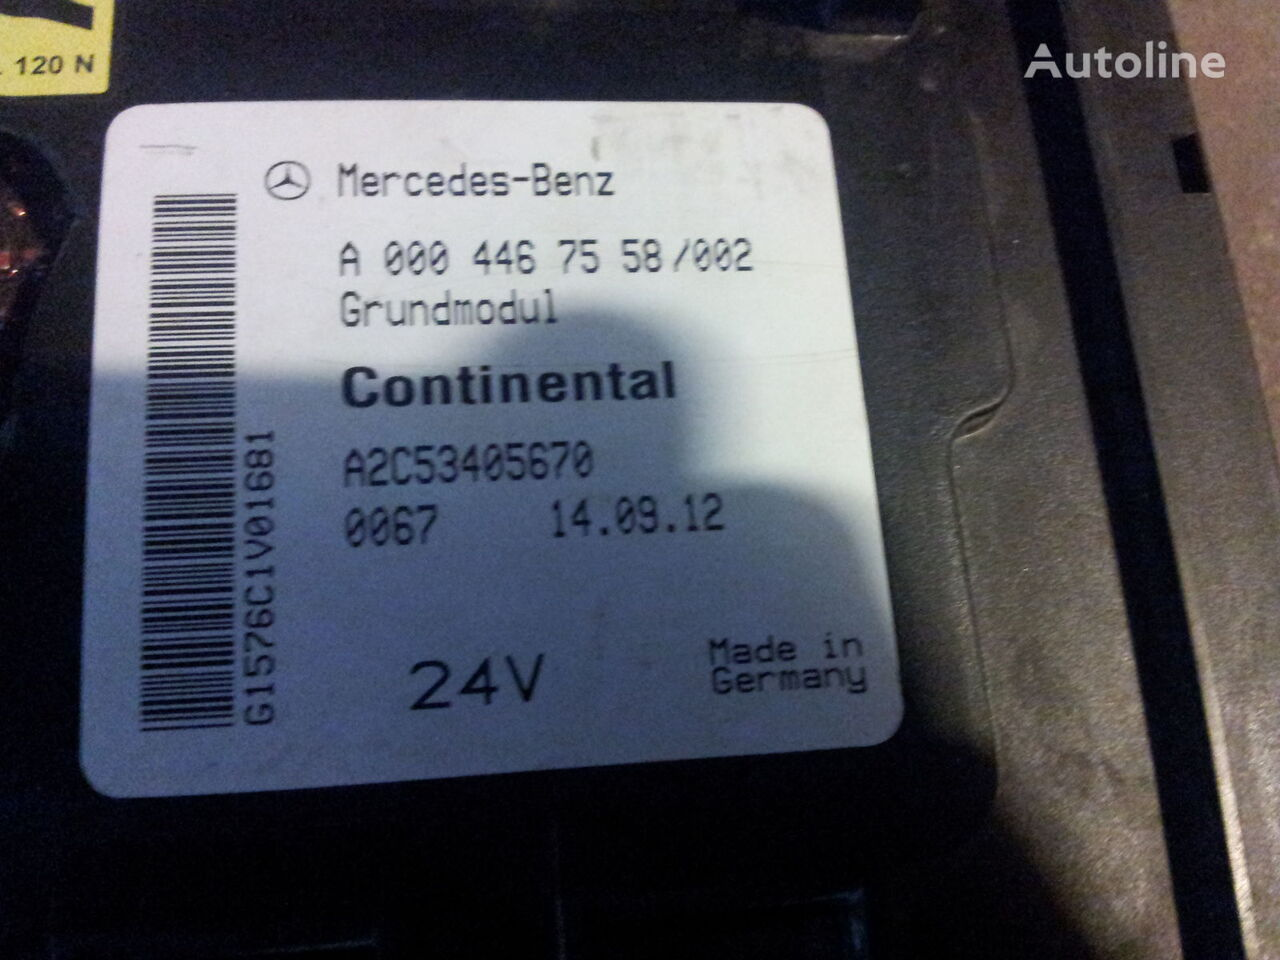 ... central MERCEDES-BENZ Actros MP2, MP3 GM unit, Grundmodul, Fuse box,  central